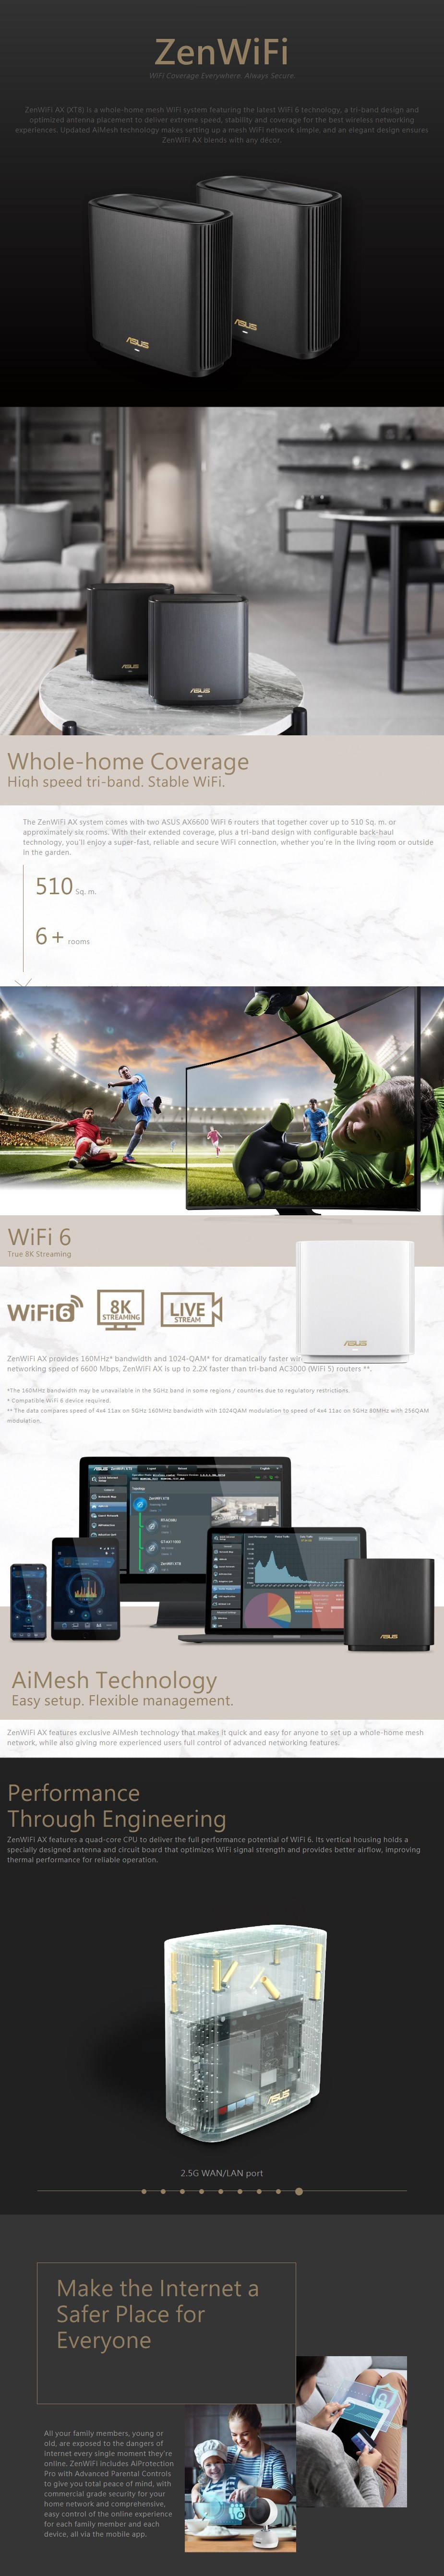 ASUS XT8 AX6600 ZenWiFi Tri Band Mesh WiFi 6 Gigabit System - White 2 Pack - Overview 1